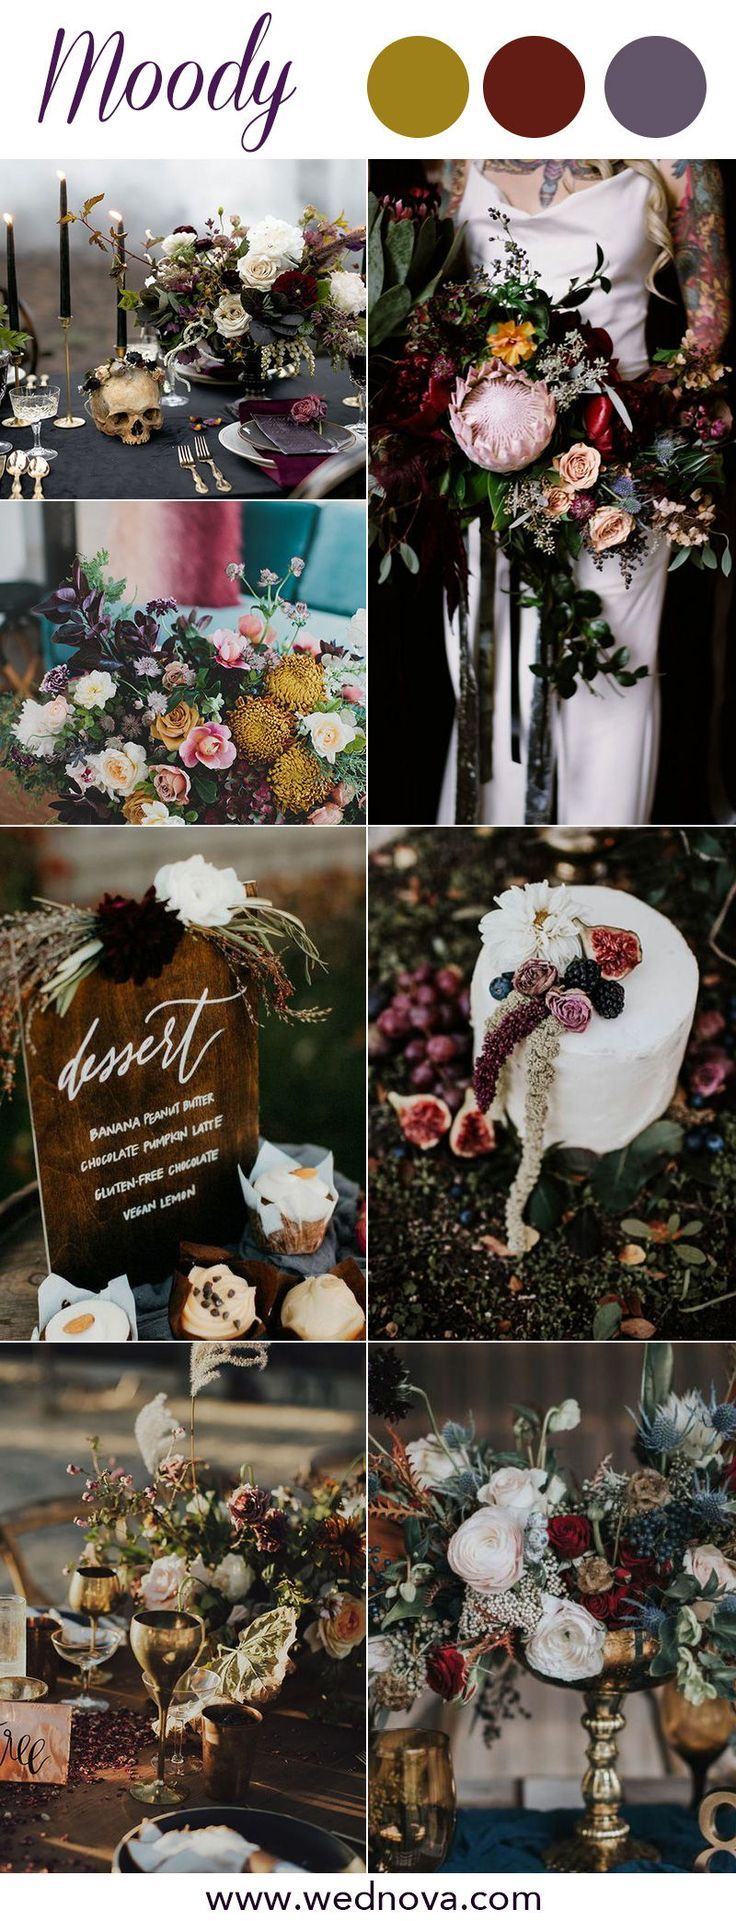 8 Chic Moody Wedding Color Palettes That Celebrate the